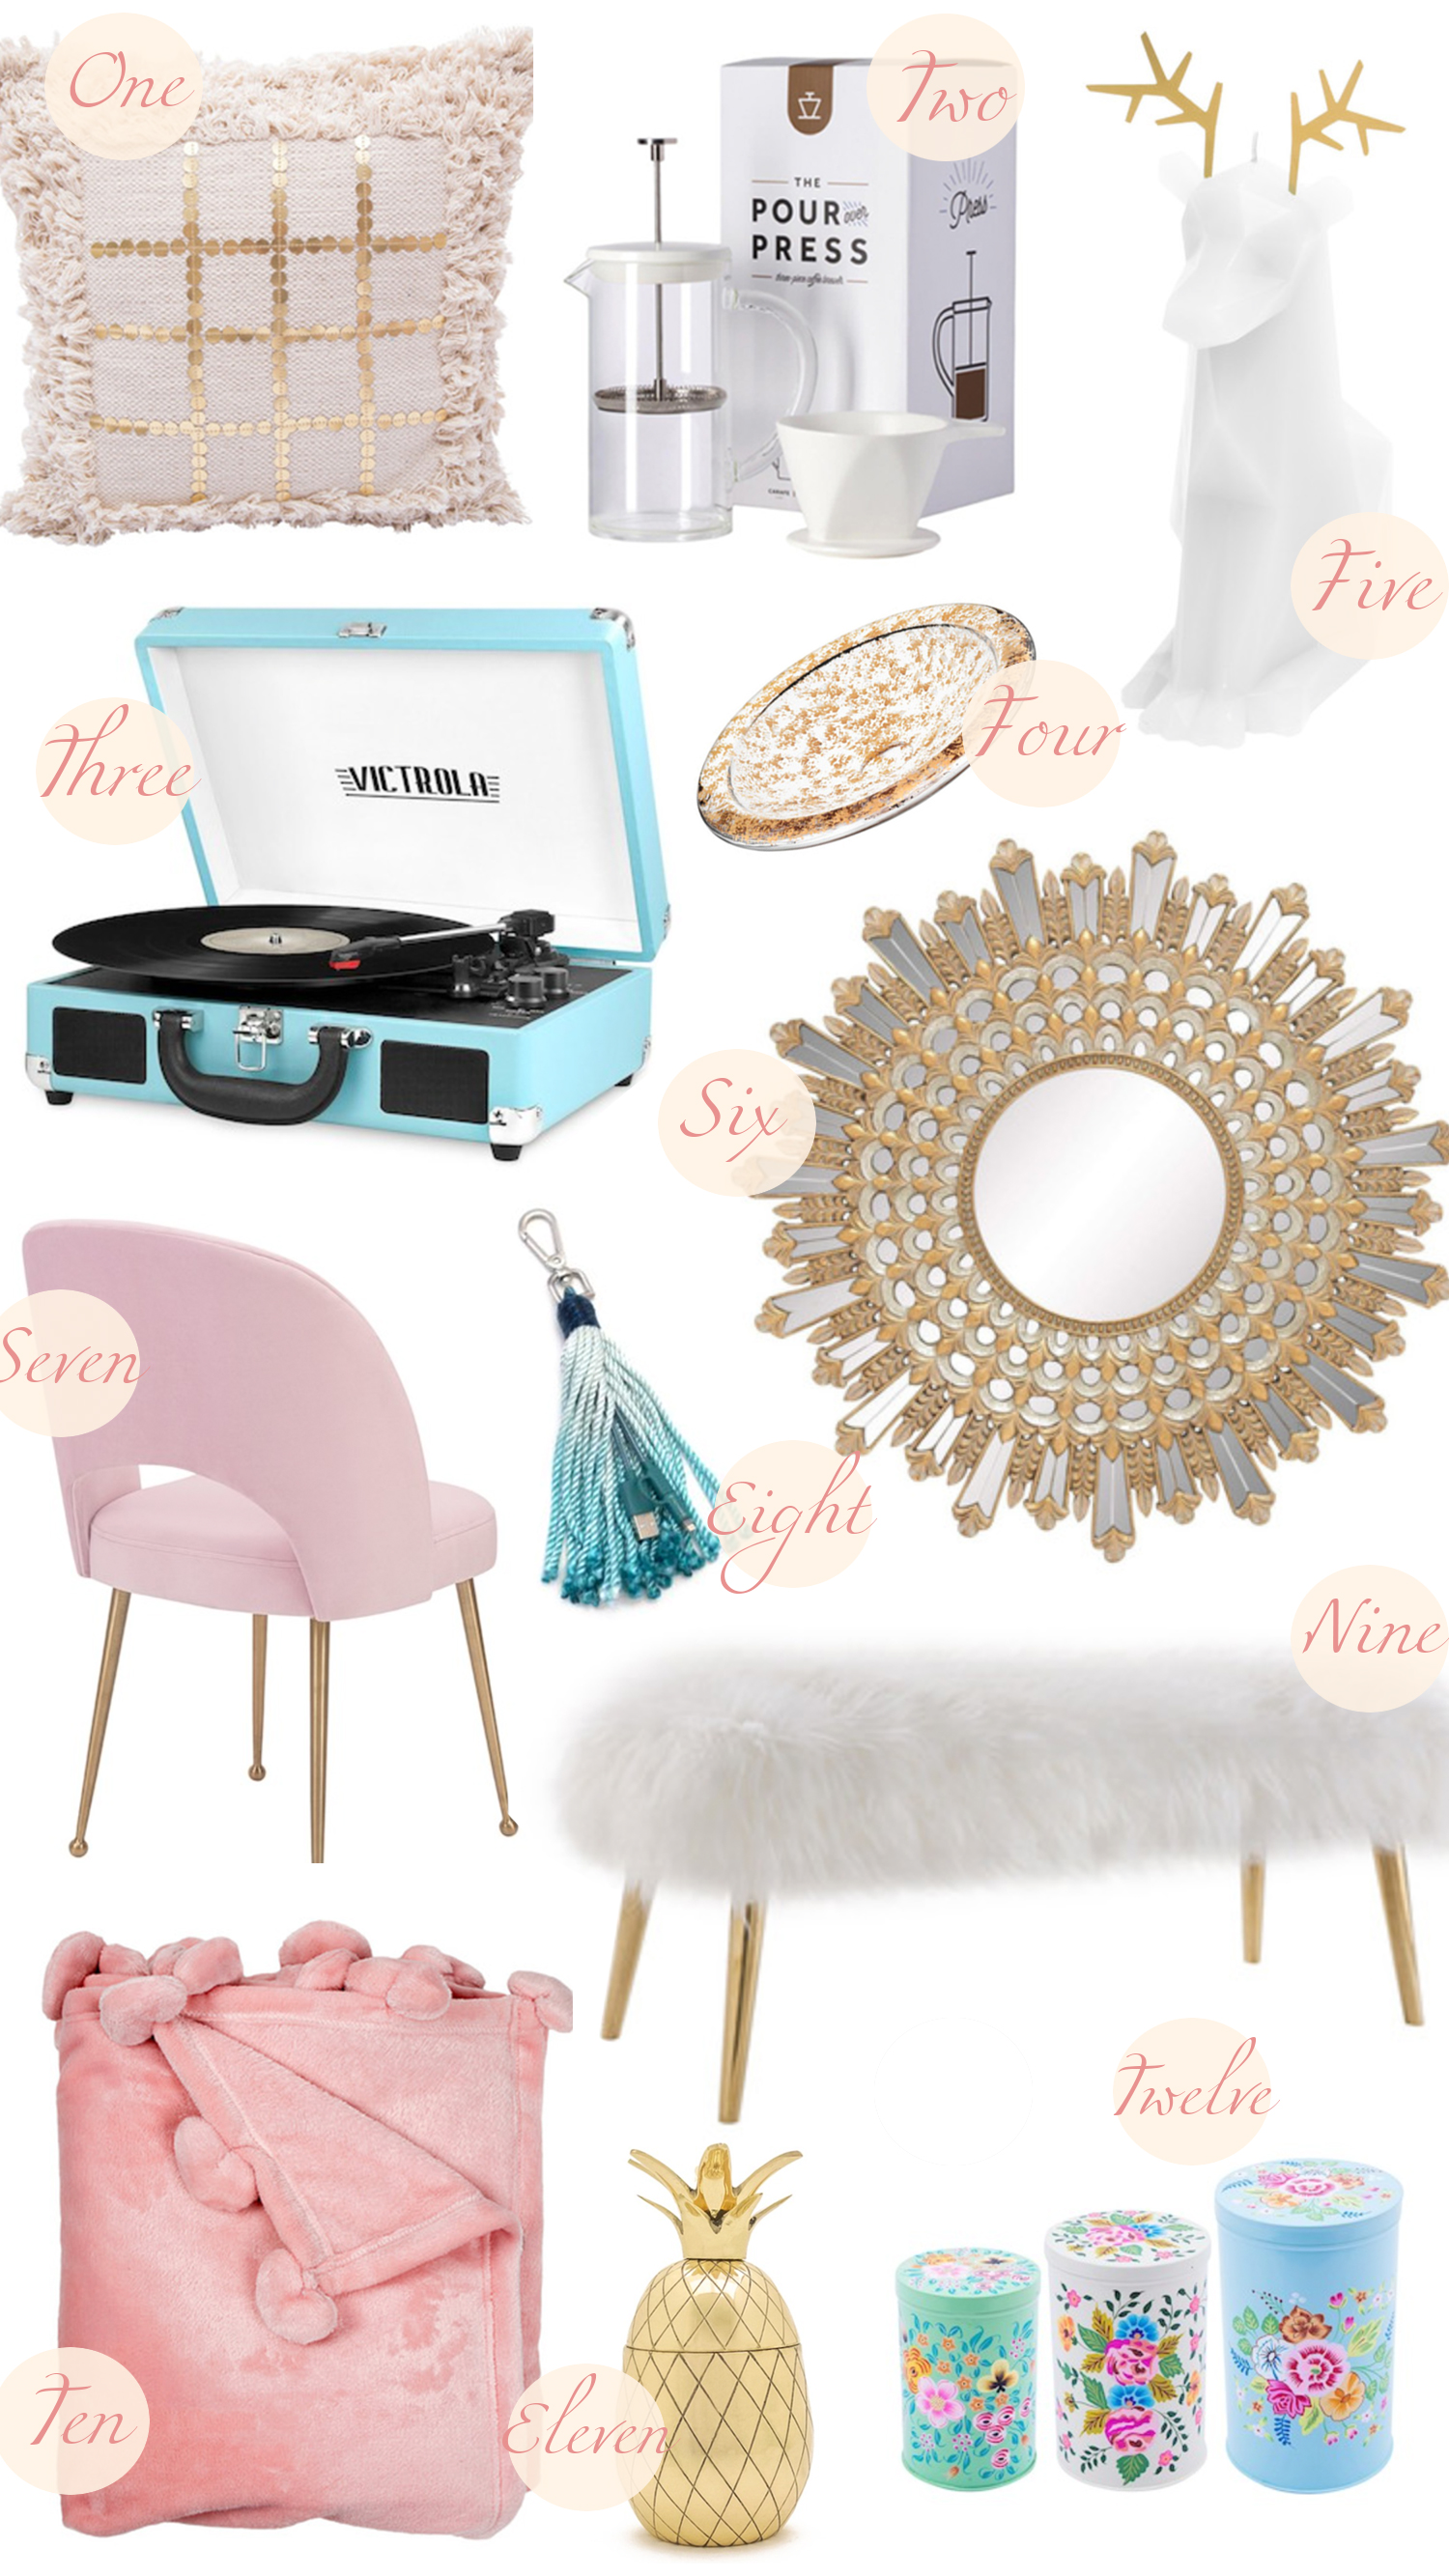 Hautelook Gift Guide   My Haute Home - Lombard and Fifth